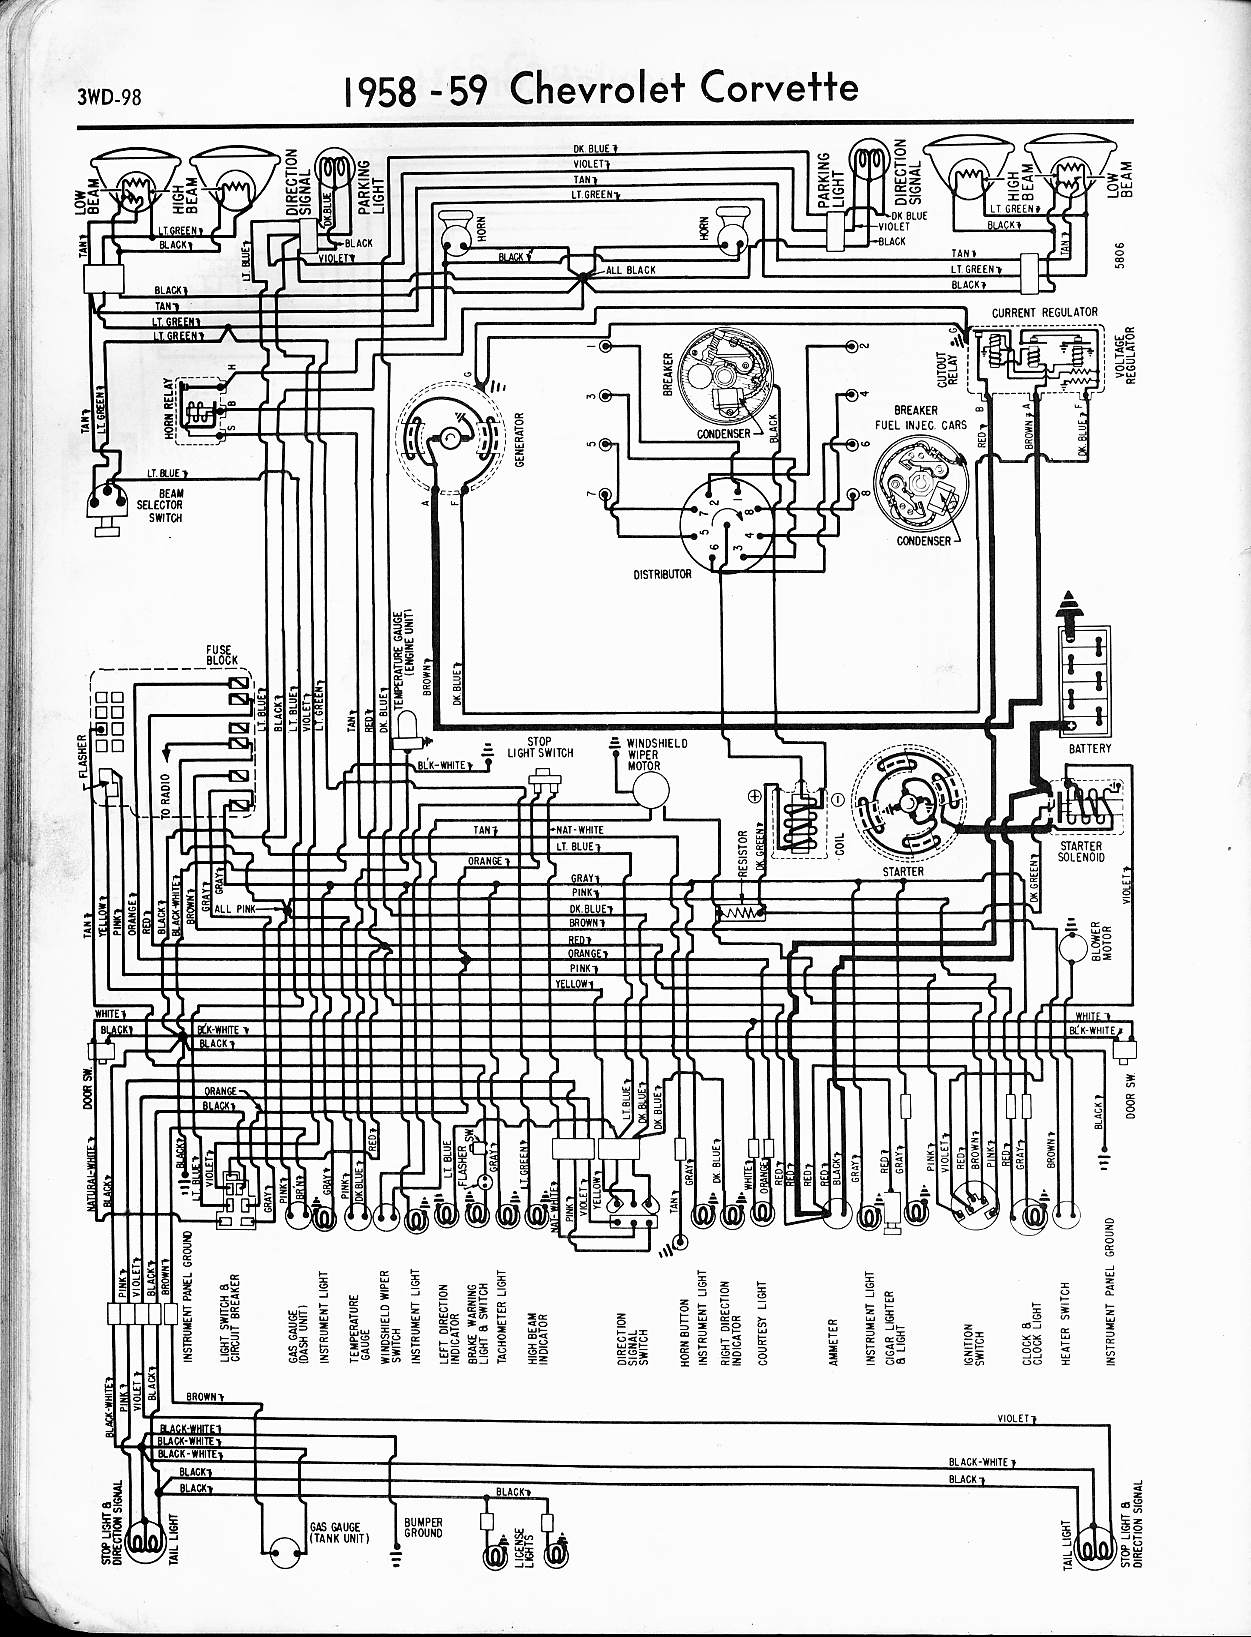 hight resolution of 1958 chevrolet steering column wiring wiring diagrams wni 1958 chevrolet steering column wiring